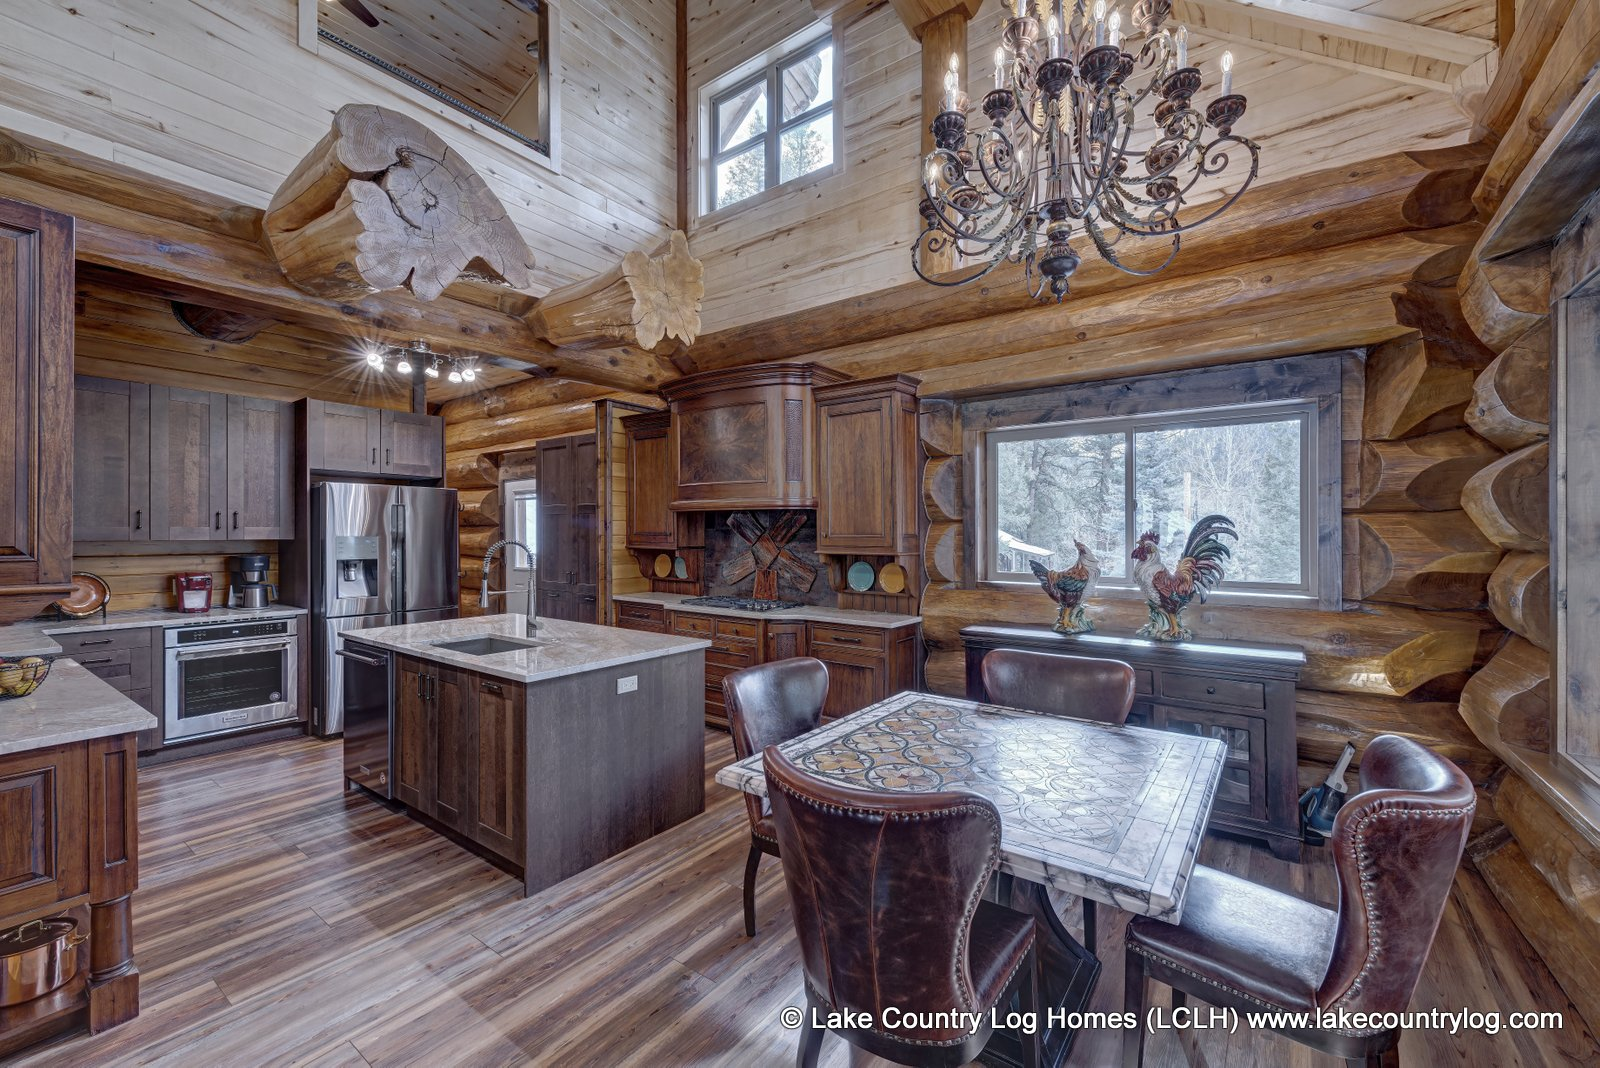 Rustic Luxury: Western Red Cedar Log Cabin Home Kitchen / Dining Room built in Colorado